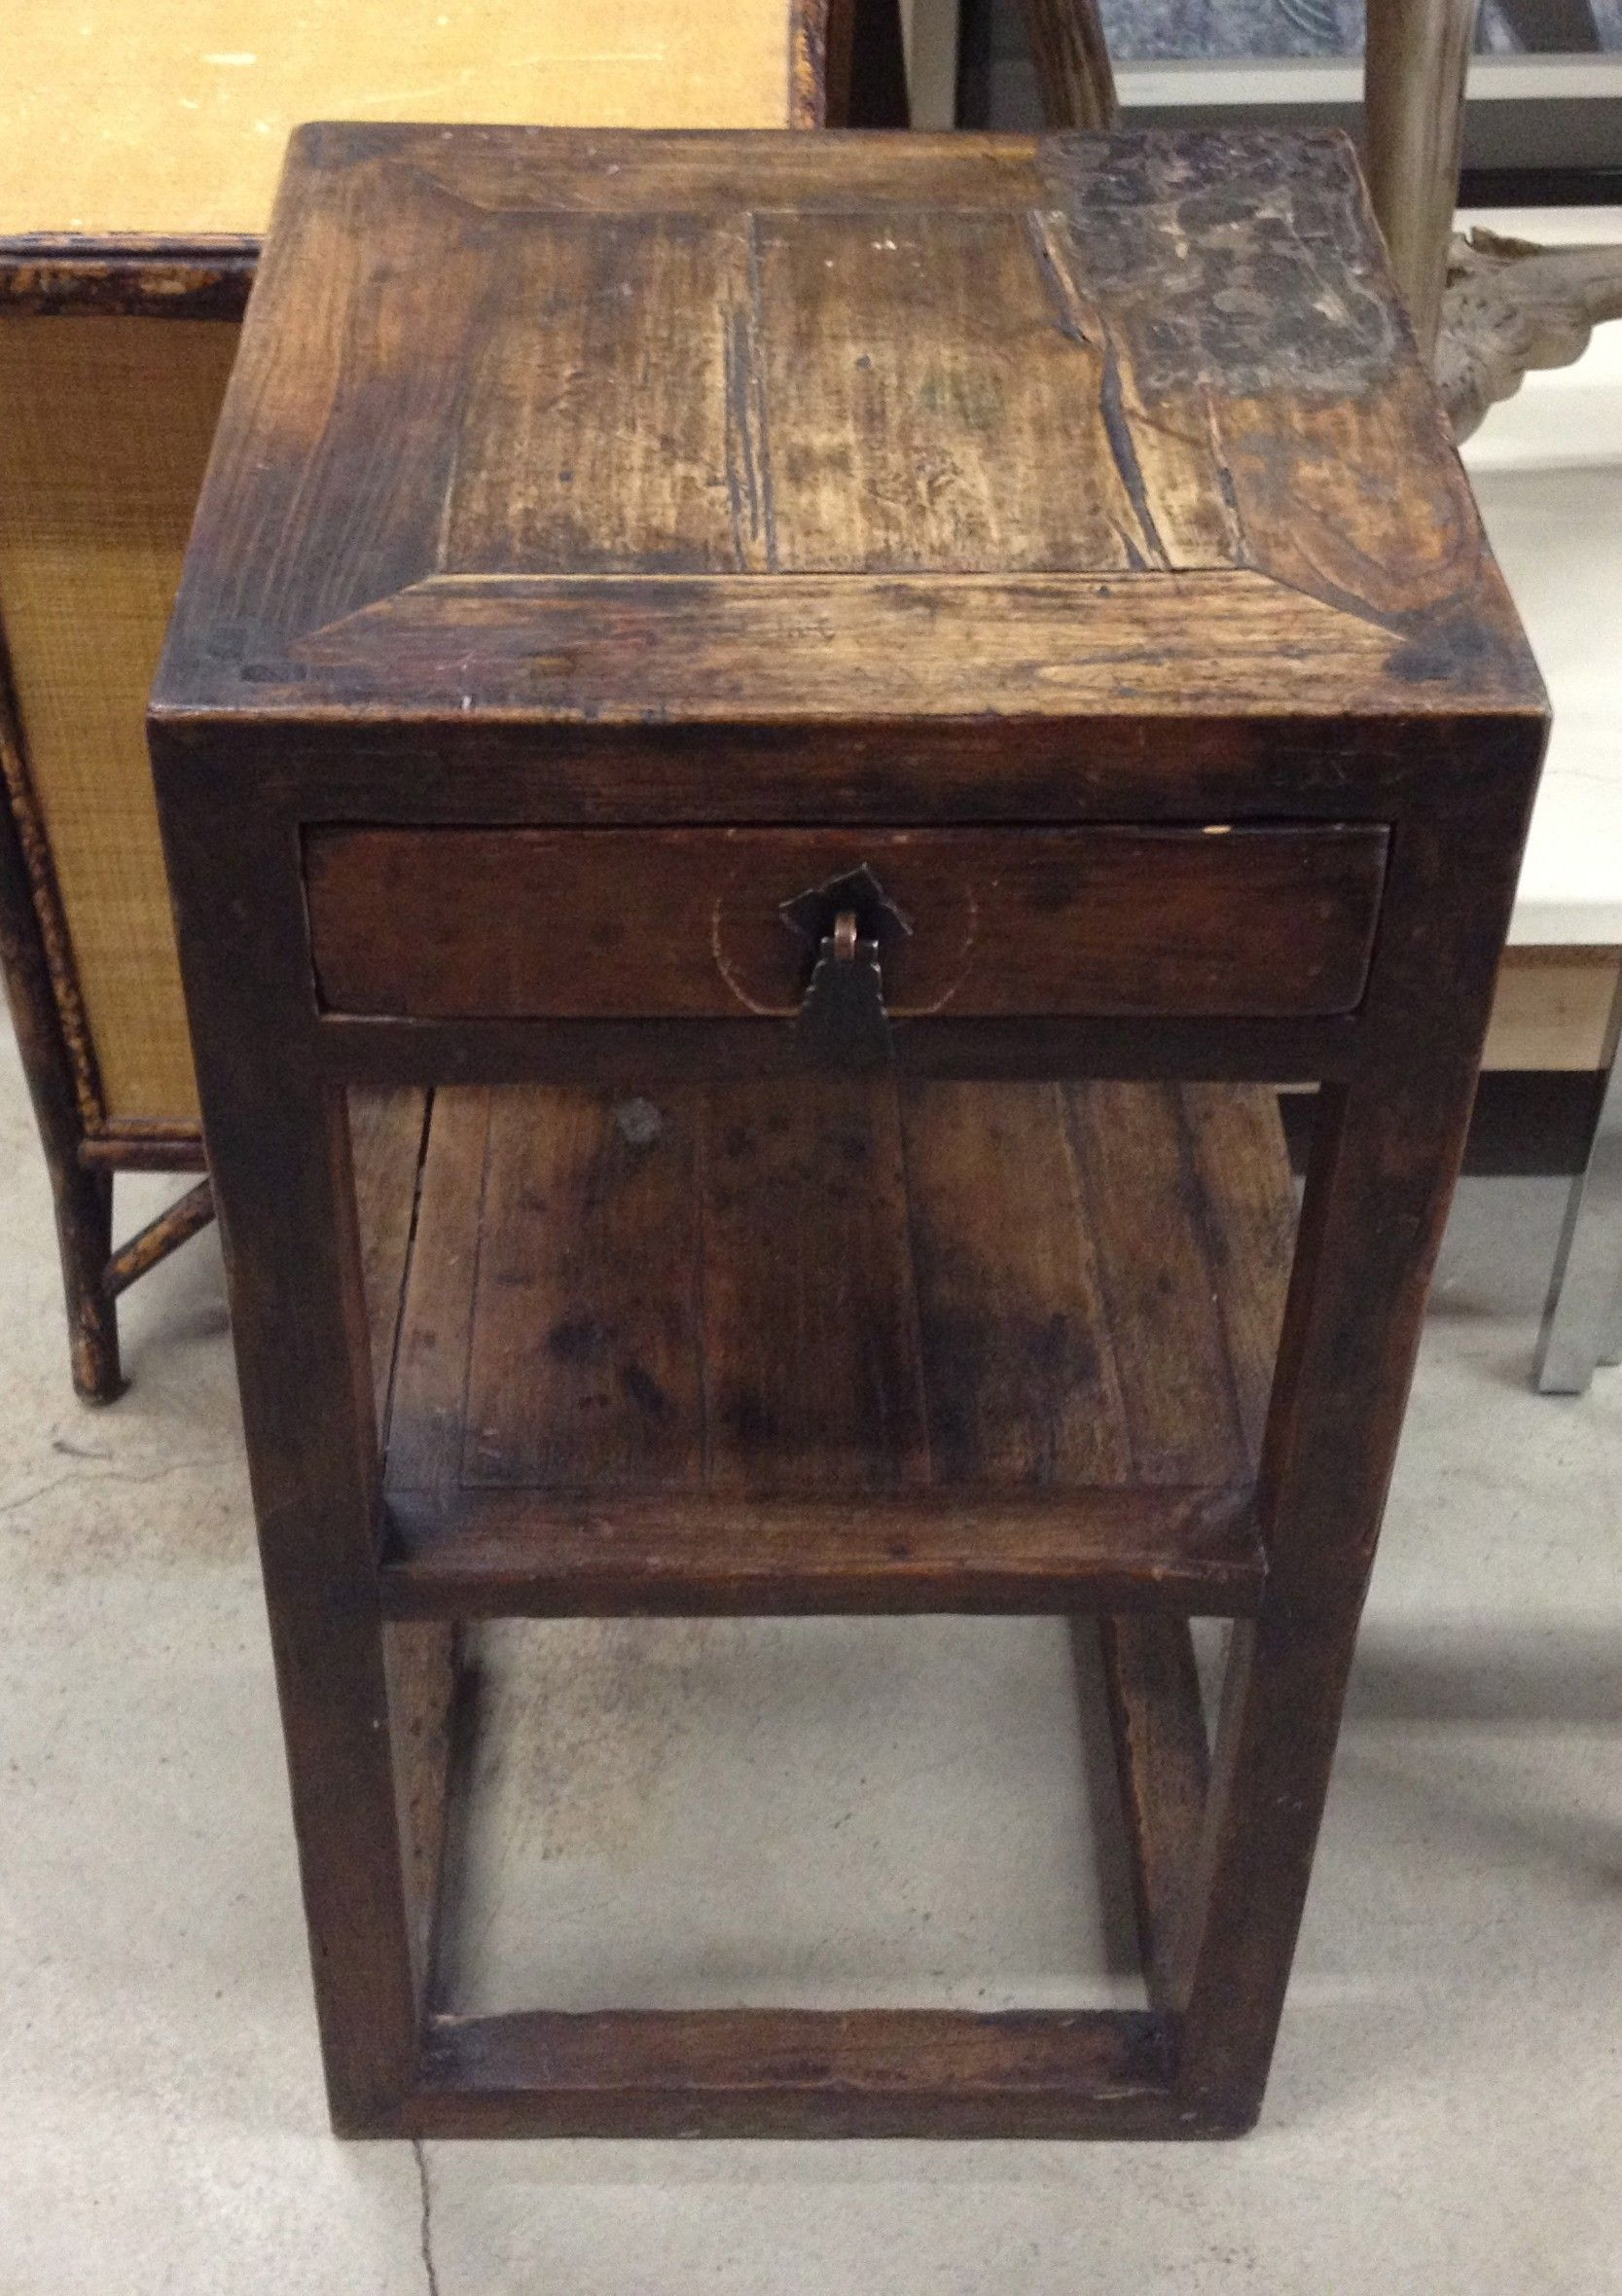 Rustic End Tables (Pair) $400   Chicago  Http://furnishly.com/catalog/product/view/id/796/s/rustic End Tables Pair/